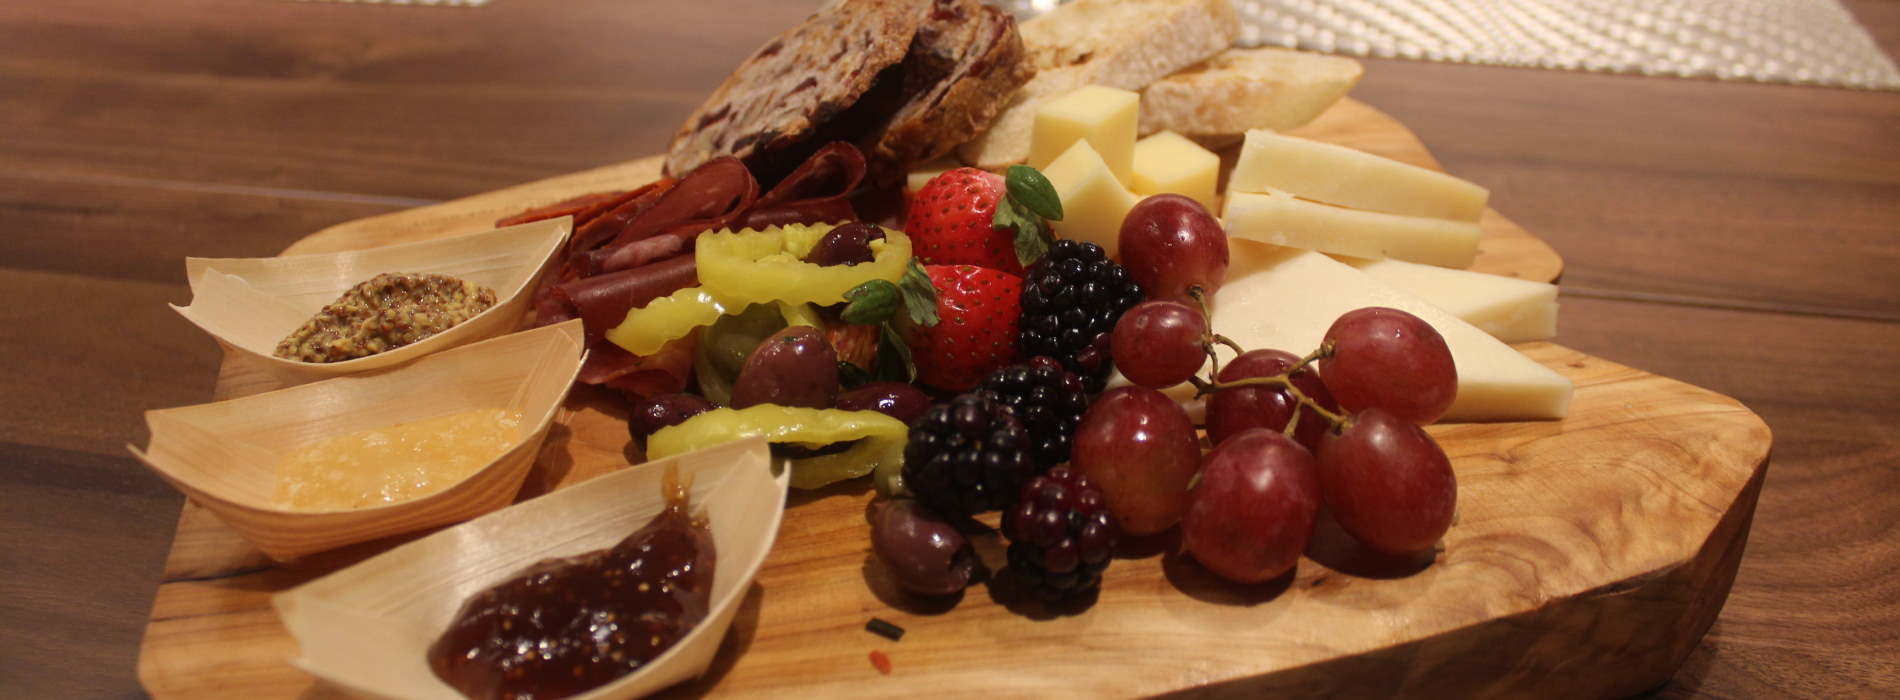 One of many Charcuterie Board Options at L'Enfant Bar and Grill